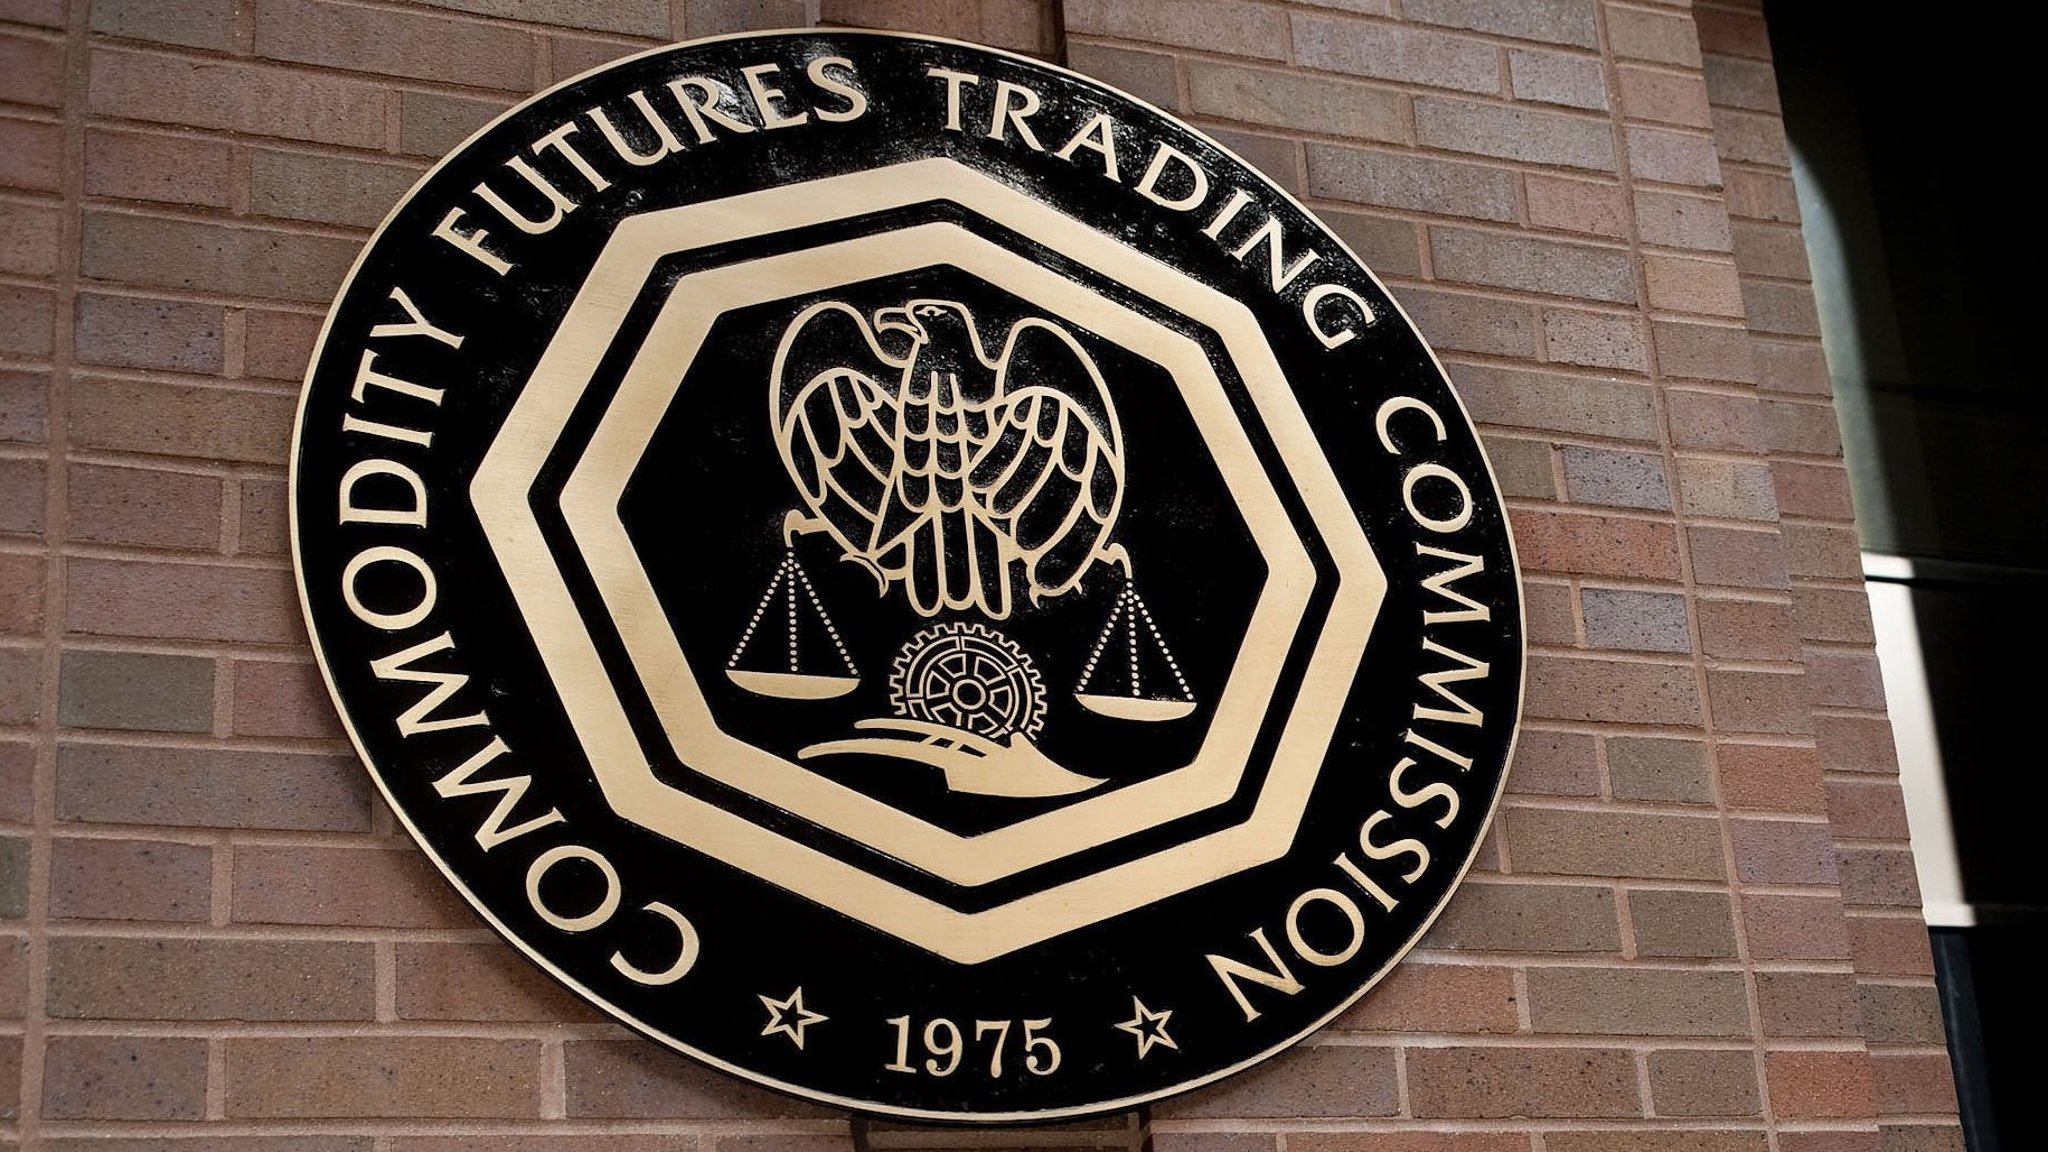 CFTC Fines Florida Trader $1.2 Million for A Commodities Fraud